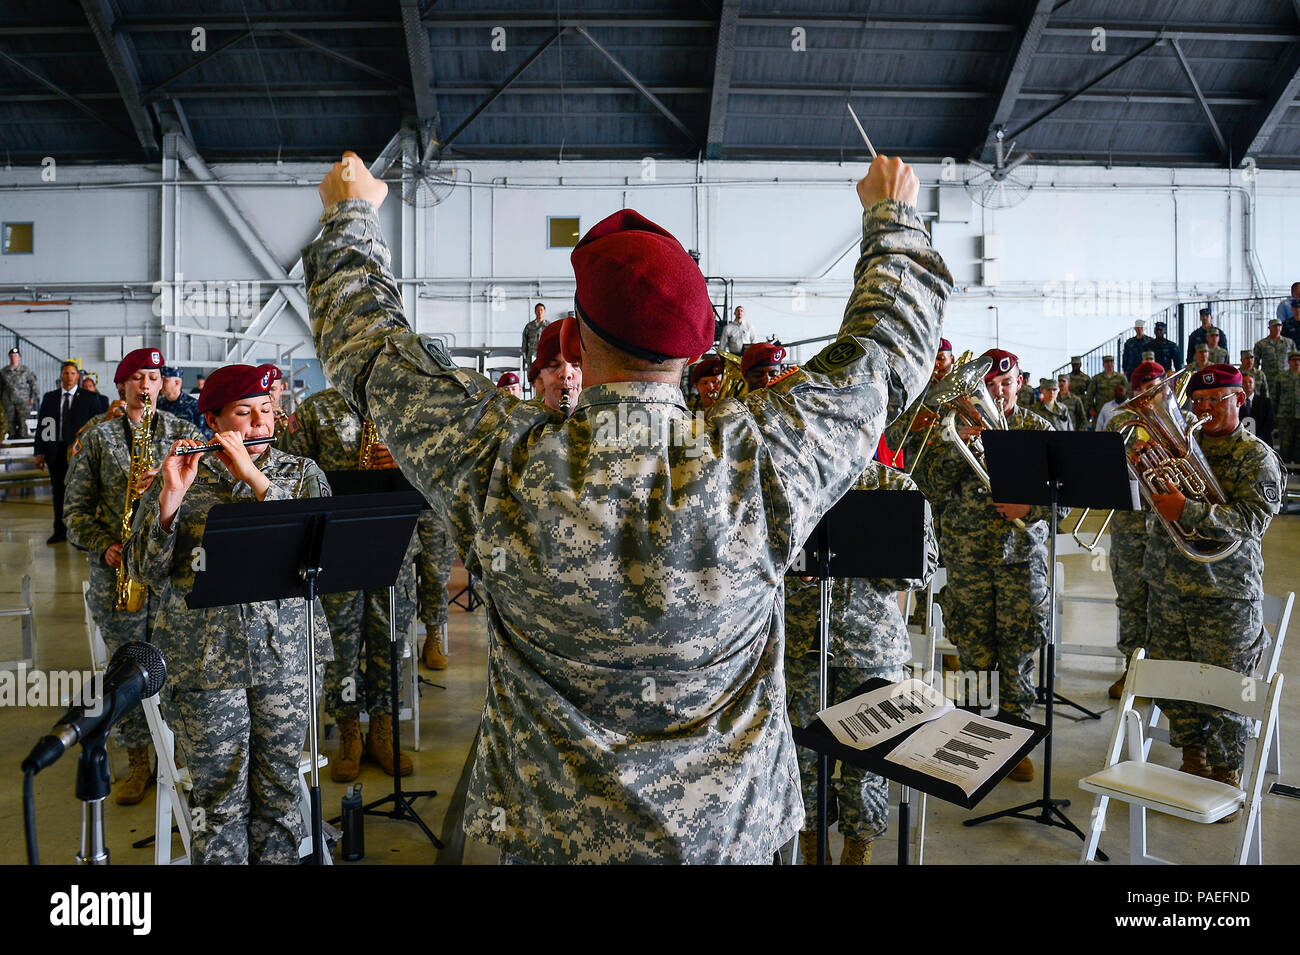 Chief Warrant Officer 3 Russell J. Houser leads the 82nd Airborne Division Band in the Armed Forces Medley at the U.S. Central Command change of command ceremony at MacDill Air Force Base, Fla., March 30, 2016. Defense Secretary Ash Carter officiated the change of command ceremony, which attracted more than 1,000 attendees, including Joint Chiefs of Staff chairman U.S. Marine Gen. Joseph F. Dunford, Central Command's component commanders, community leaders and senior coalition representatives. (U.S. Air Force photo by Senior Airman Ned T. Johnston) Stock Photo